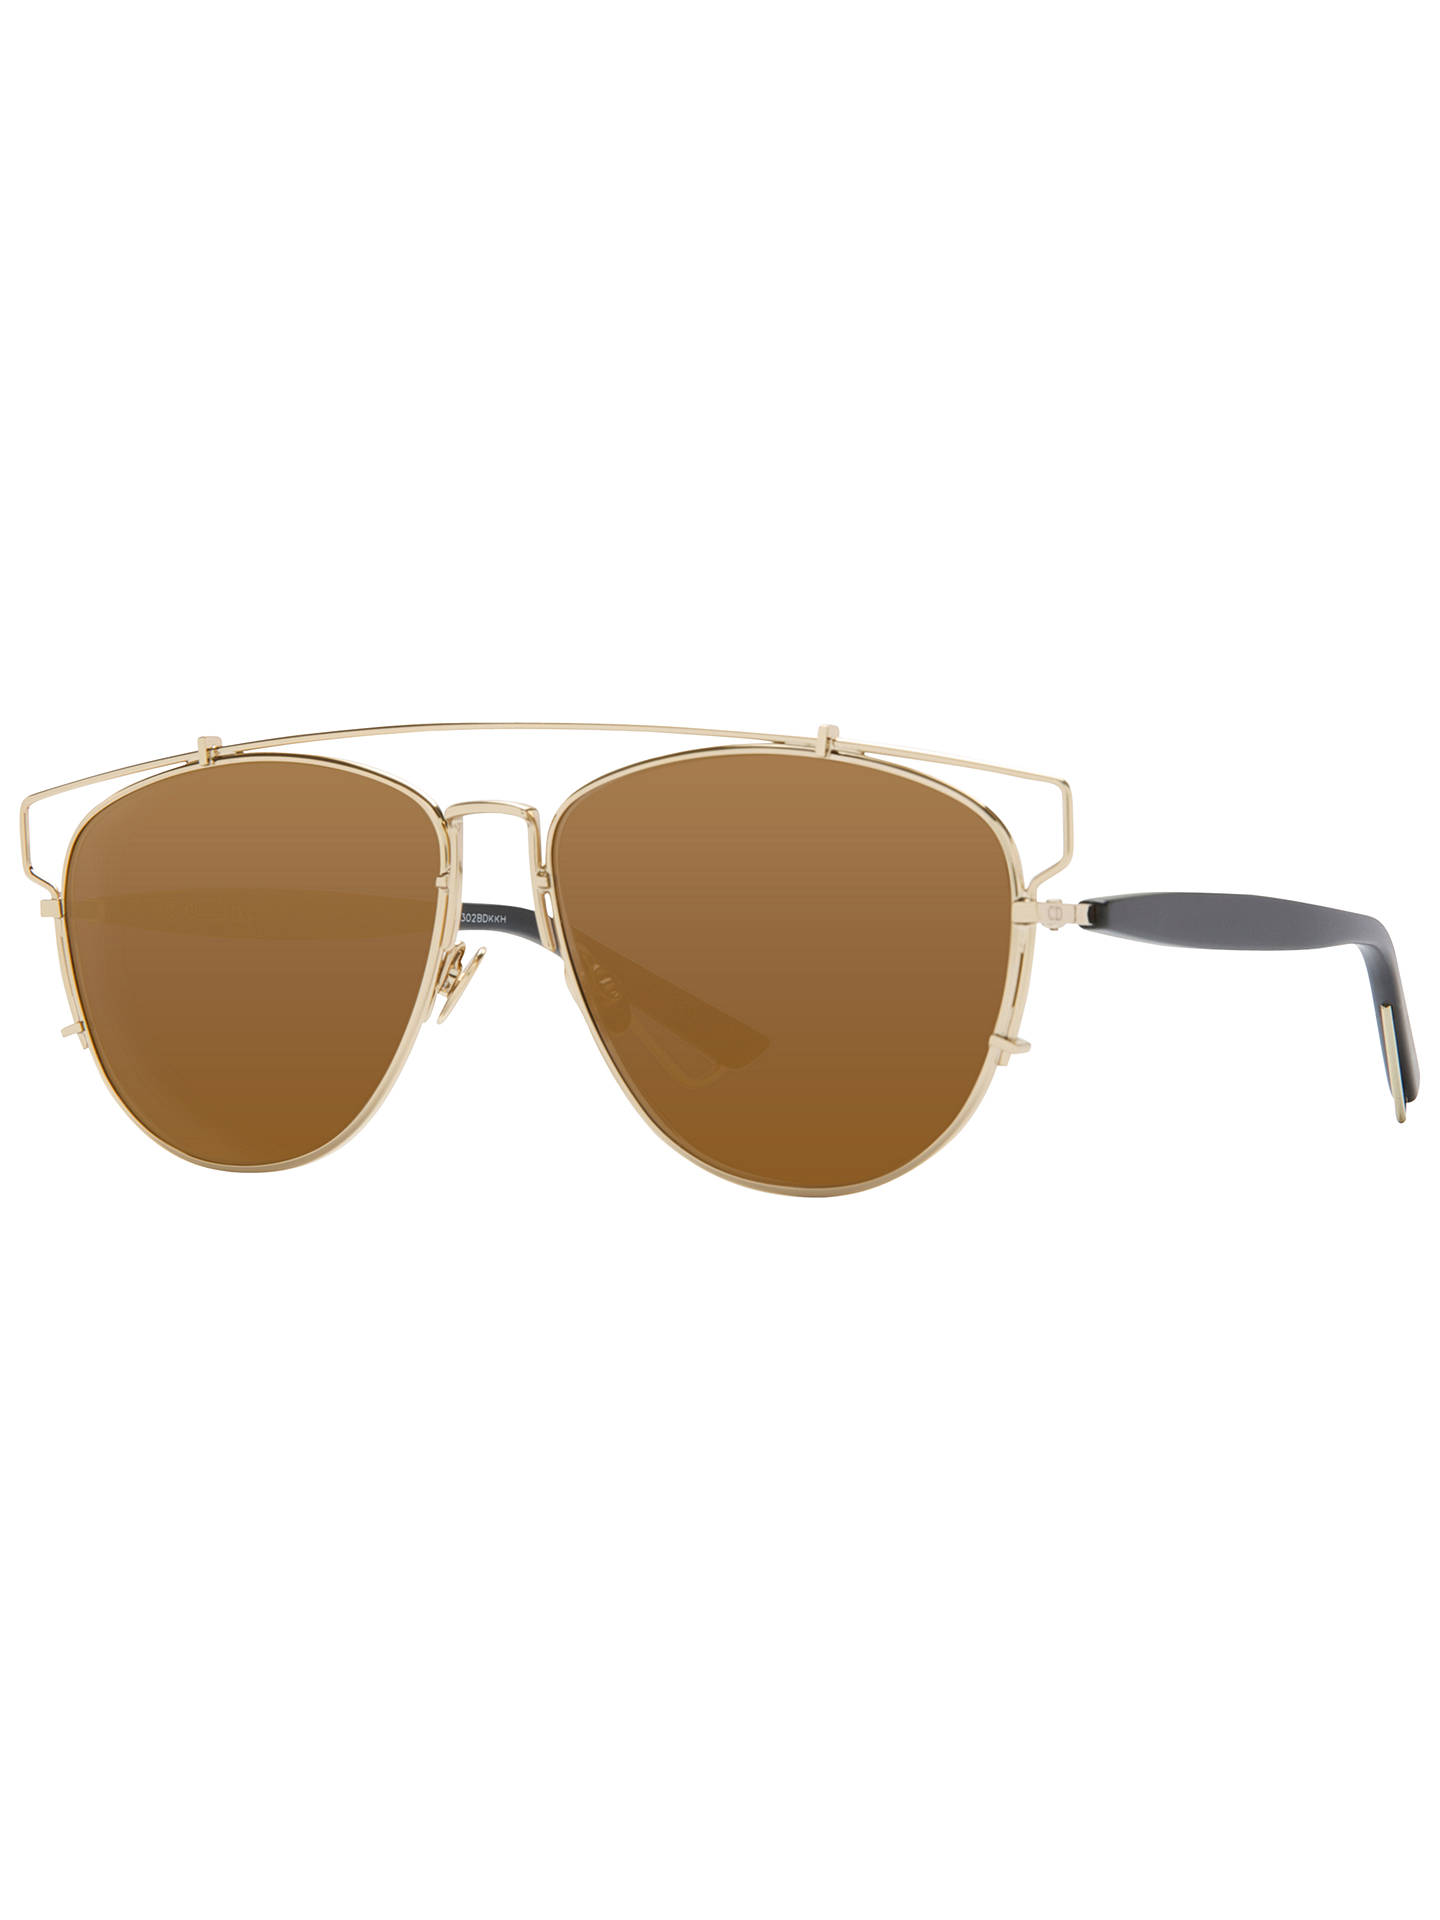 179cd62db59c Christian Dior Dior Technologic Pilot Sunglasses at John Lewis ...